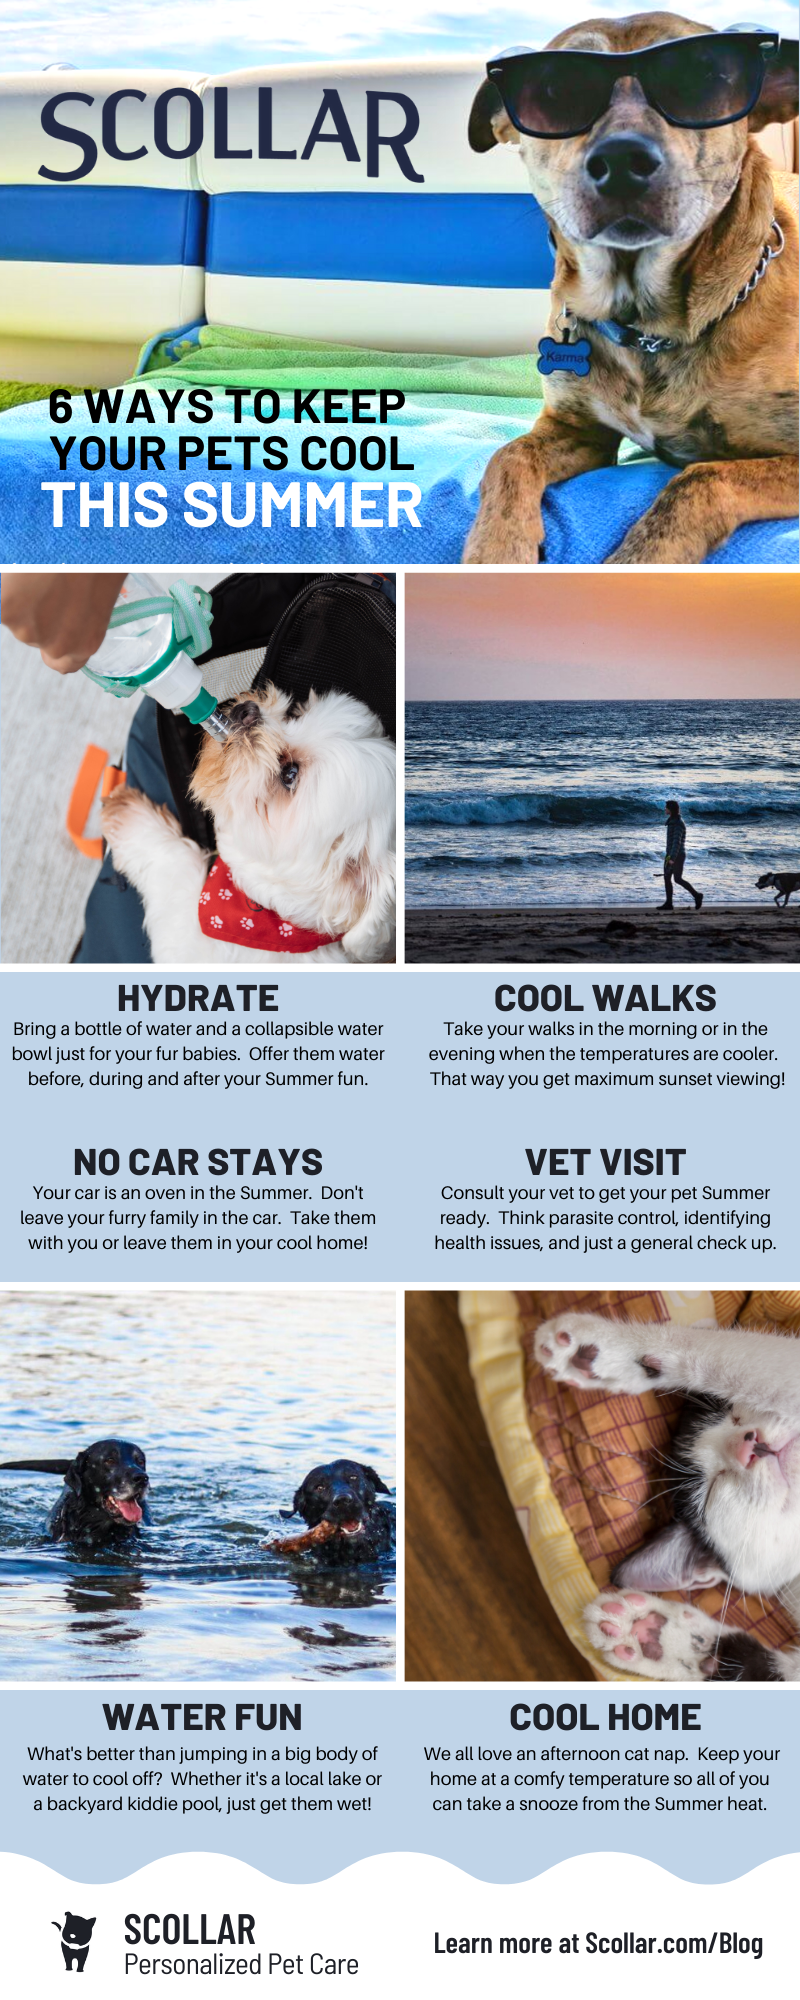 Scollar Infographic - 6 Ways to Keep your Furry Family Cool this Summer